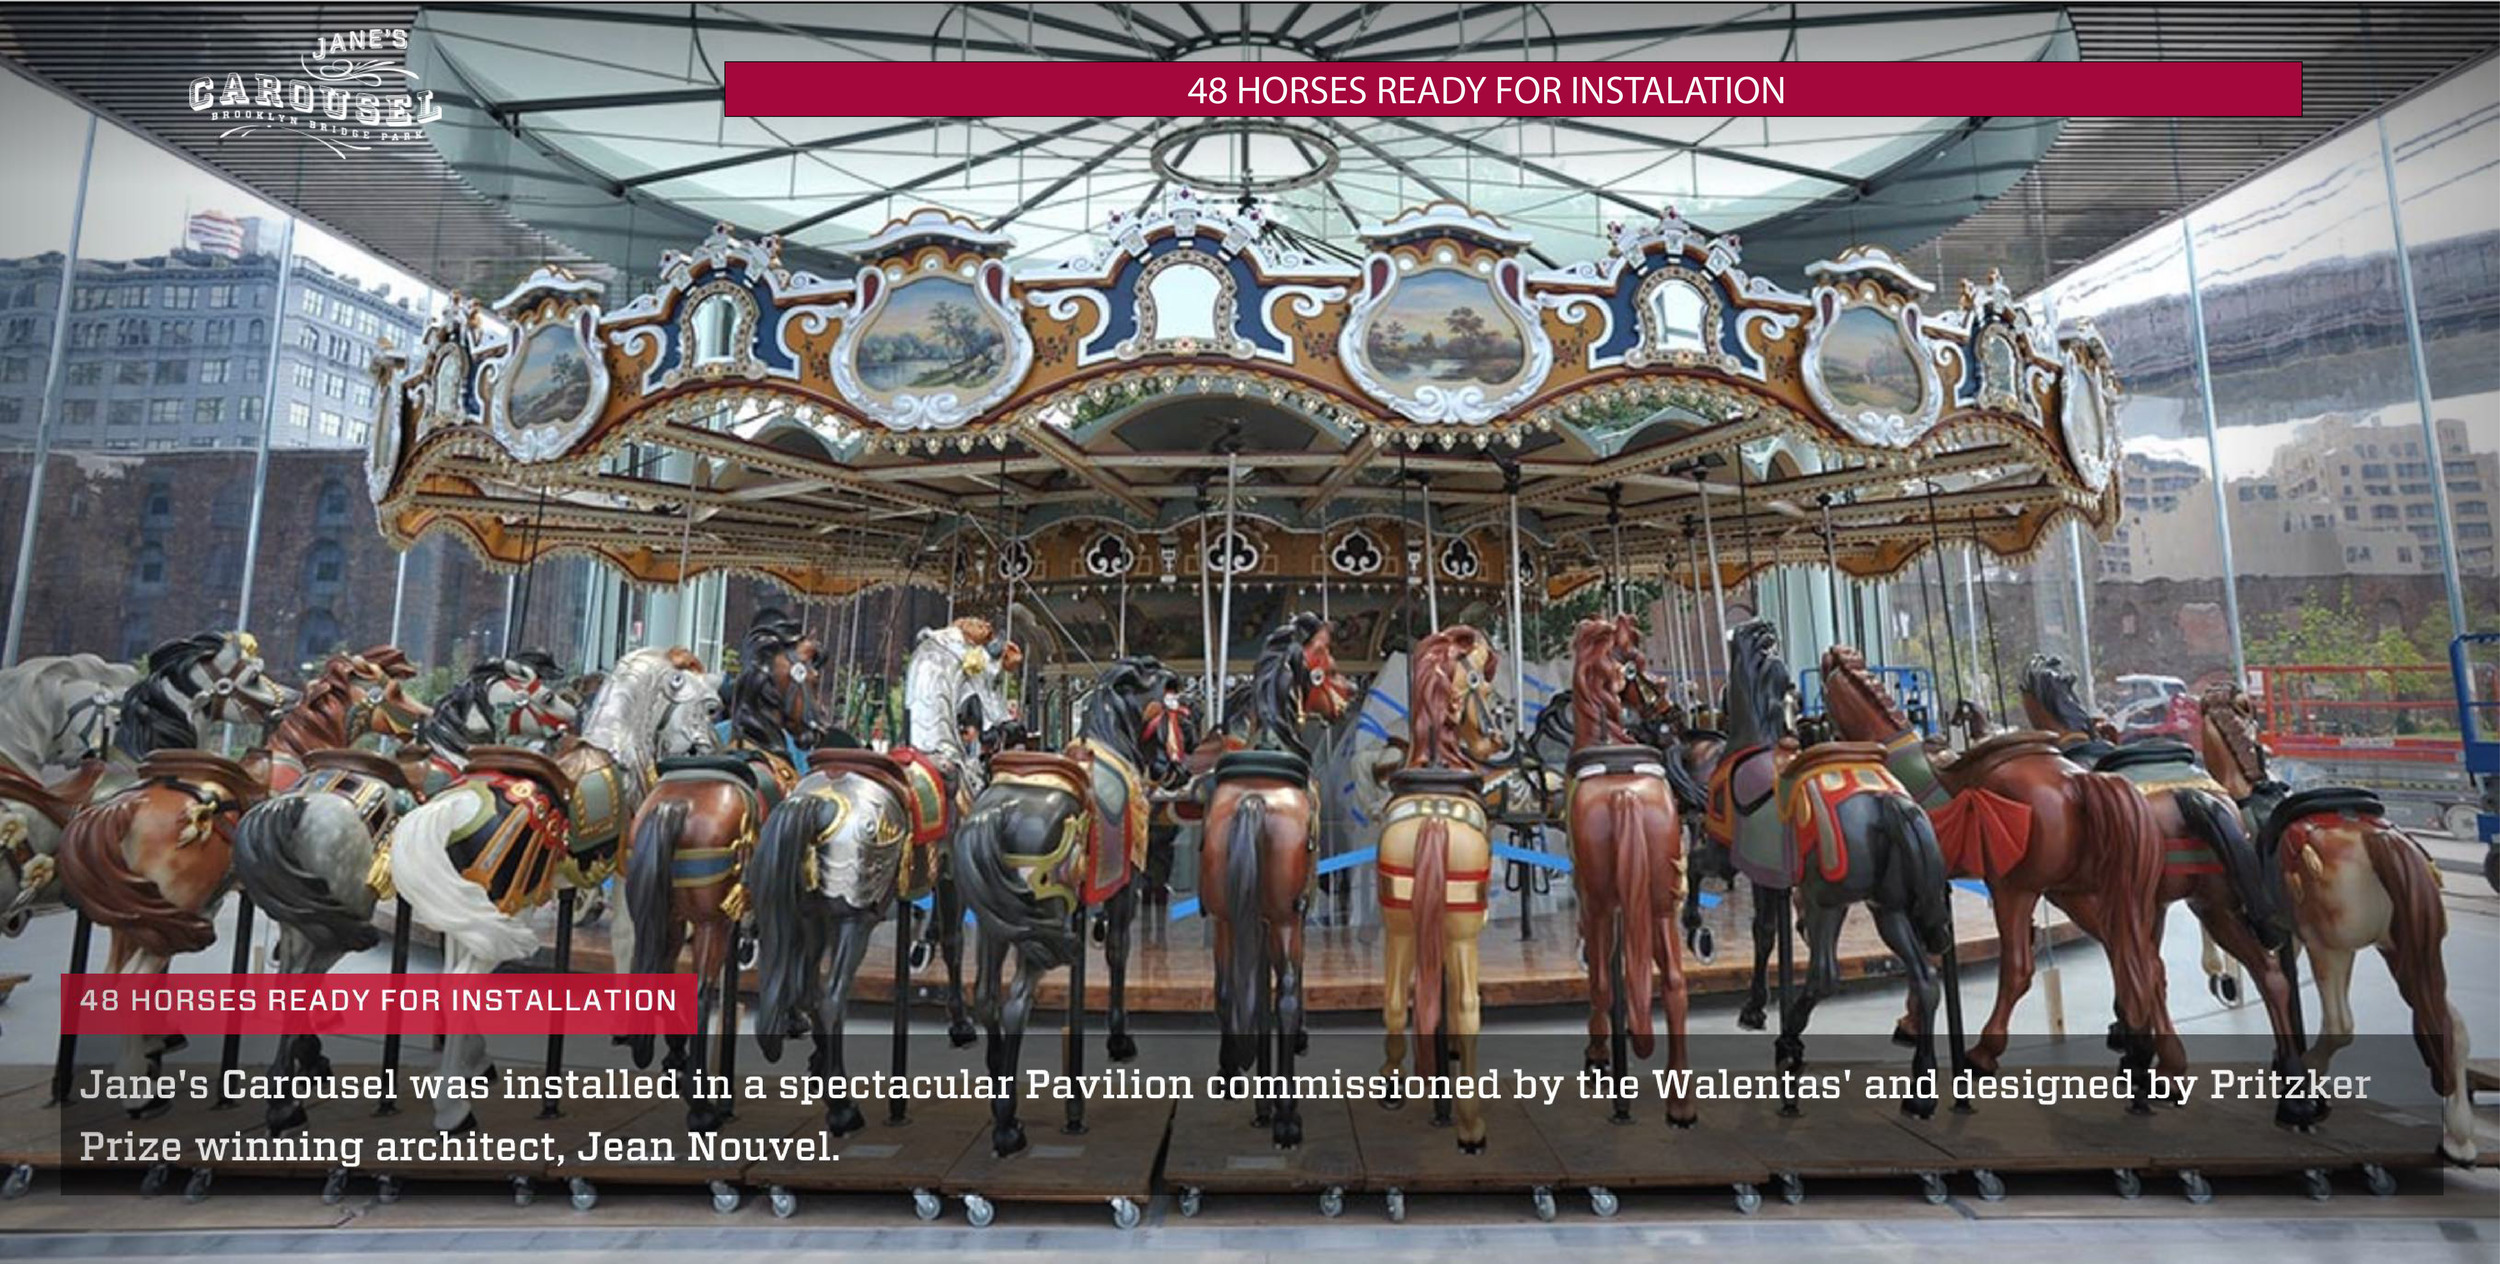 the-welcome-blog-tours-in-new-york-city-janes-carousel-travel-tourism-in-new-york